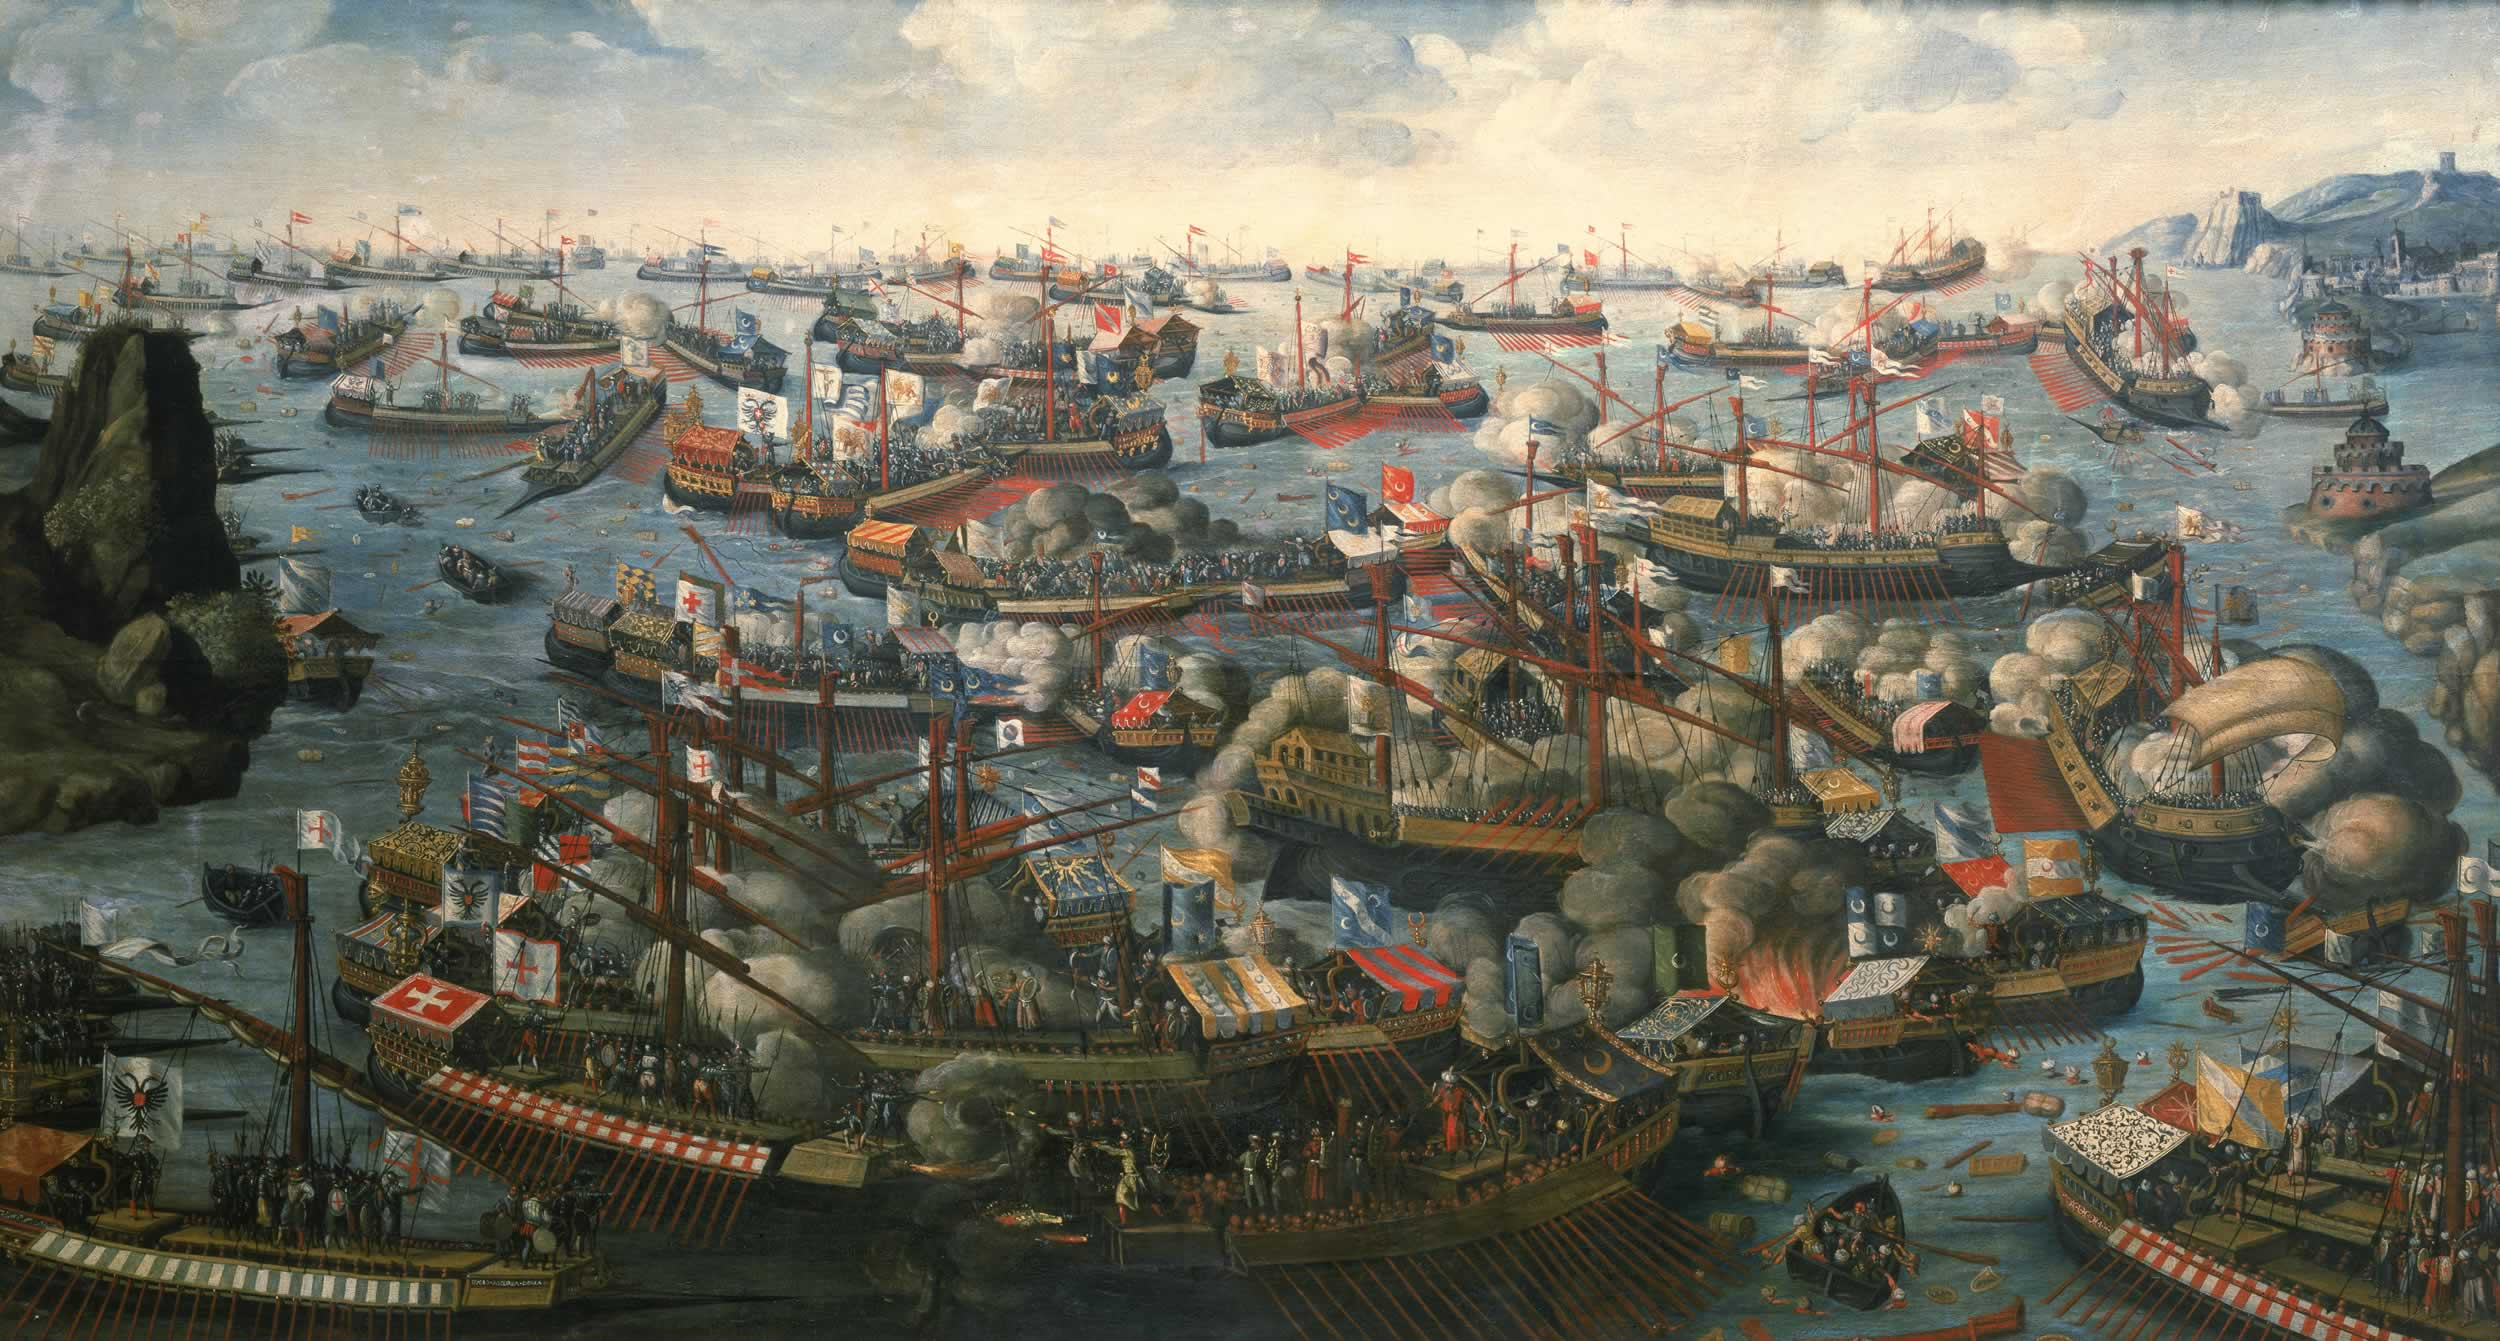 The Battle of Lepanto (1571), marking the end of the Ottoman Empire as the dominant naval power in the Mediterranean.